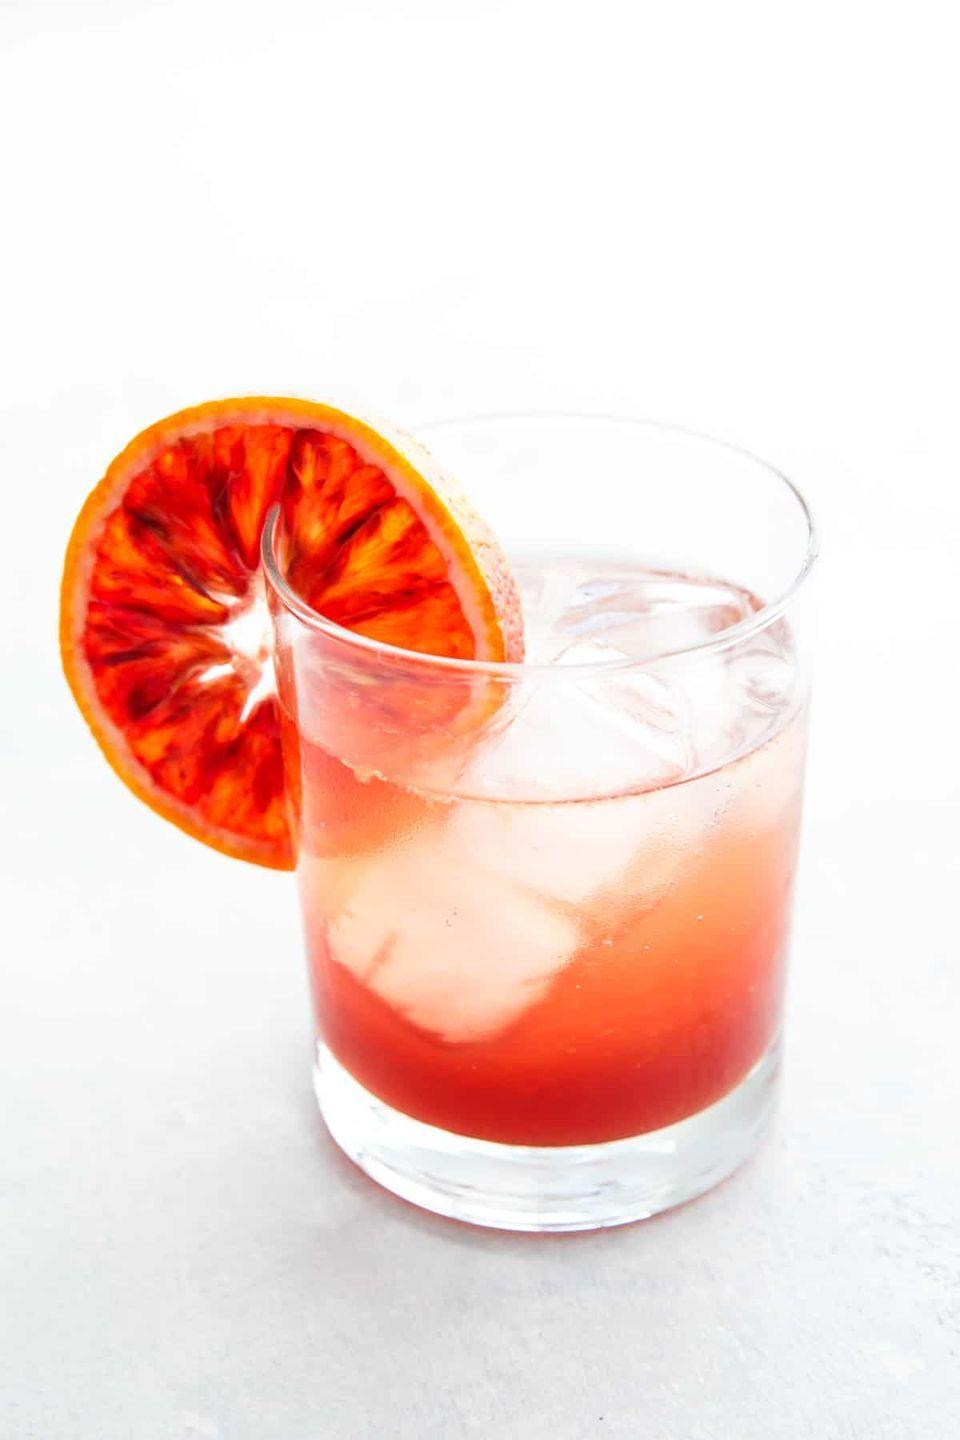 """<p>For a cocktail that's as vibrant as the sunset, try this mix of gin, fresh blood orange juice, vanilla bean, and Meyer lemon sugar syrup. </p><p>Get the recipe at <a href=""""https://www.loveandoliveoil.com/2016/12/sicilian-gin-spritz-cocktail.html"""" rel=""""nofollow noopener"""" target=""""_blank"""" data-ylk=""""slk:Love & Olive Oil"""" class=""""link rapid-noclick-resp"""">Love & Olive Oil</a>. </p>"""